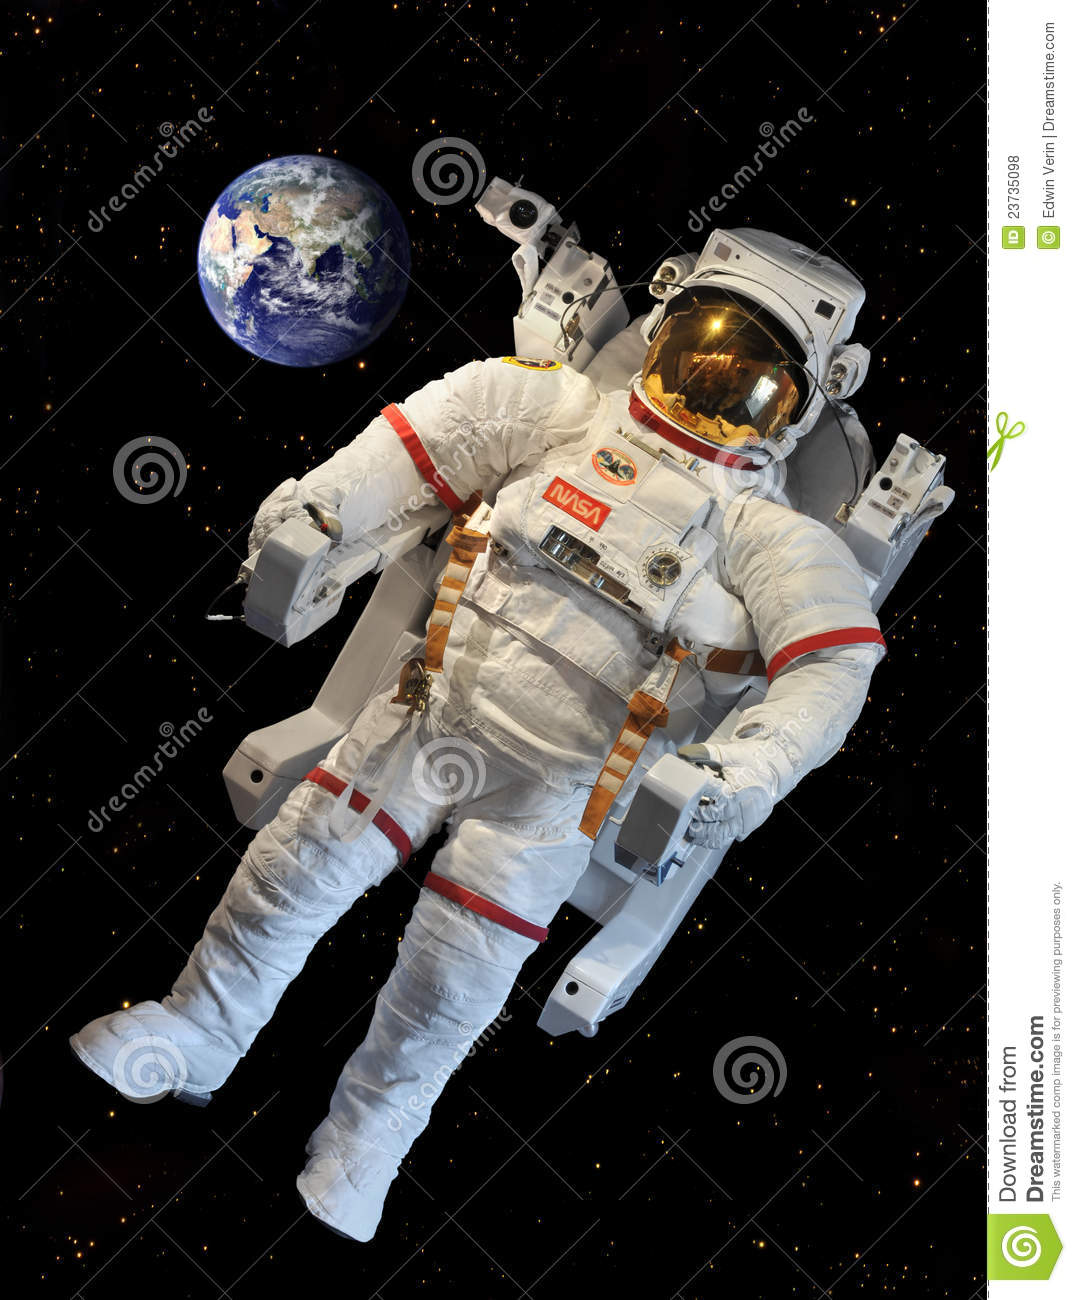 space suit astronaut in space - photo #11